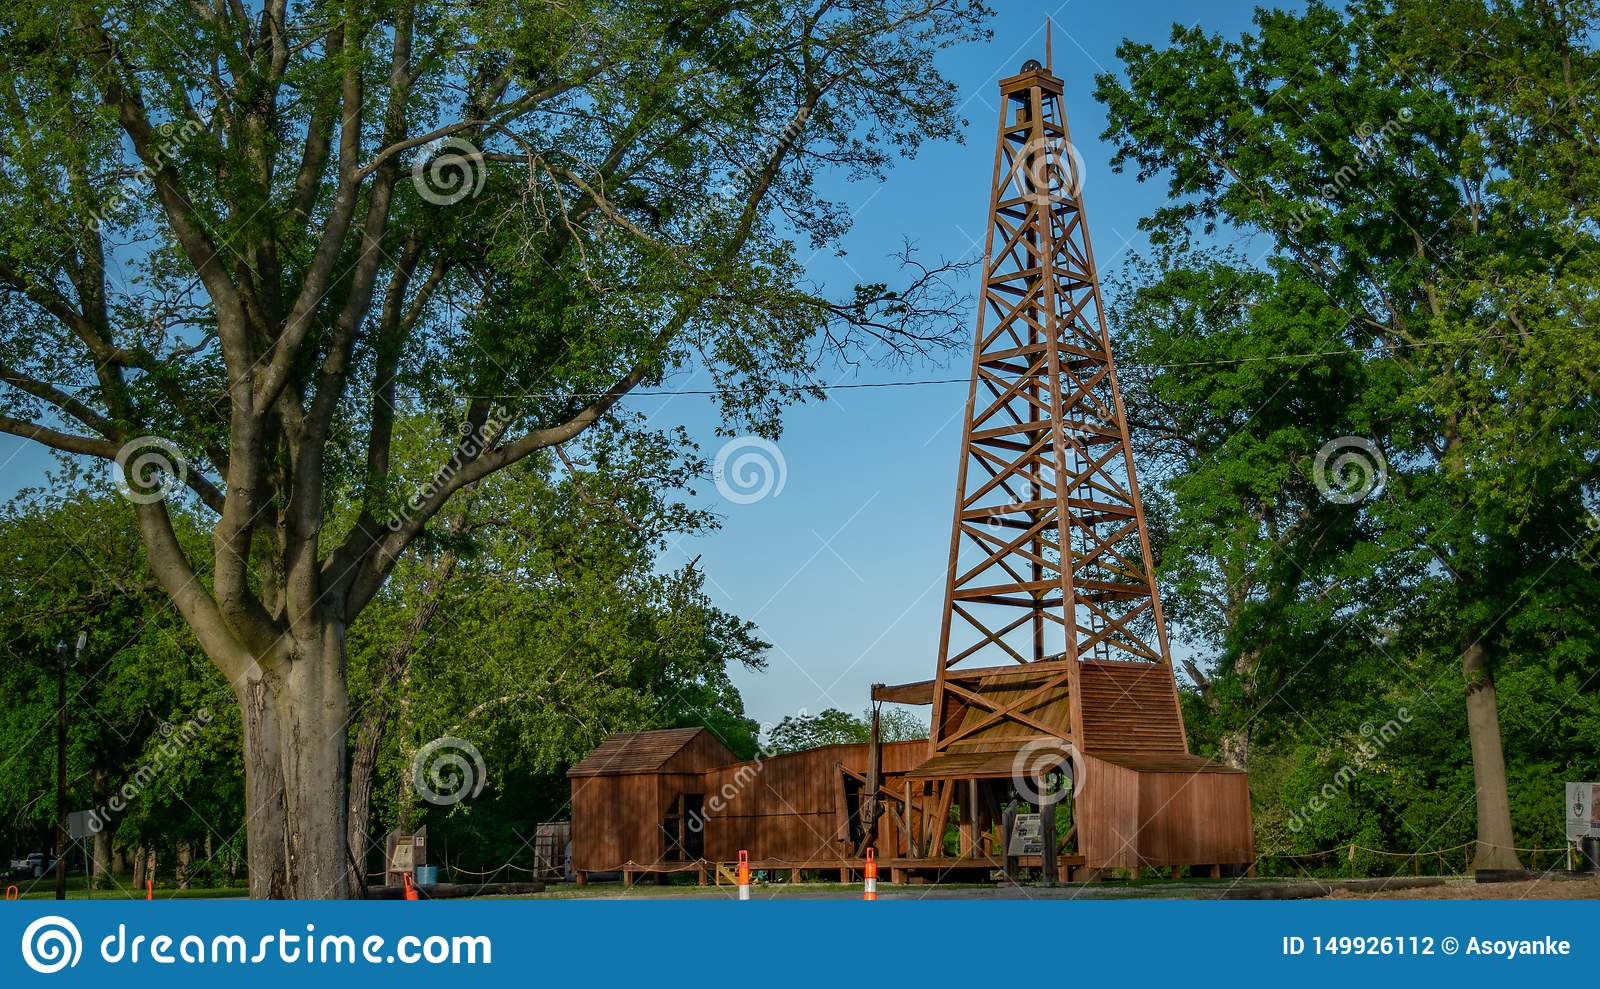 Image Of Park & Wooden Oil Well, Shot At Pathfinder Parkway